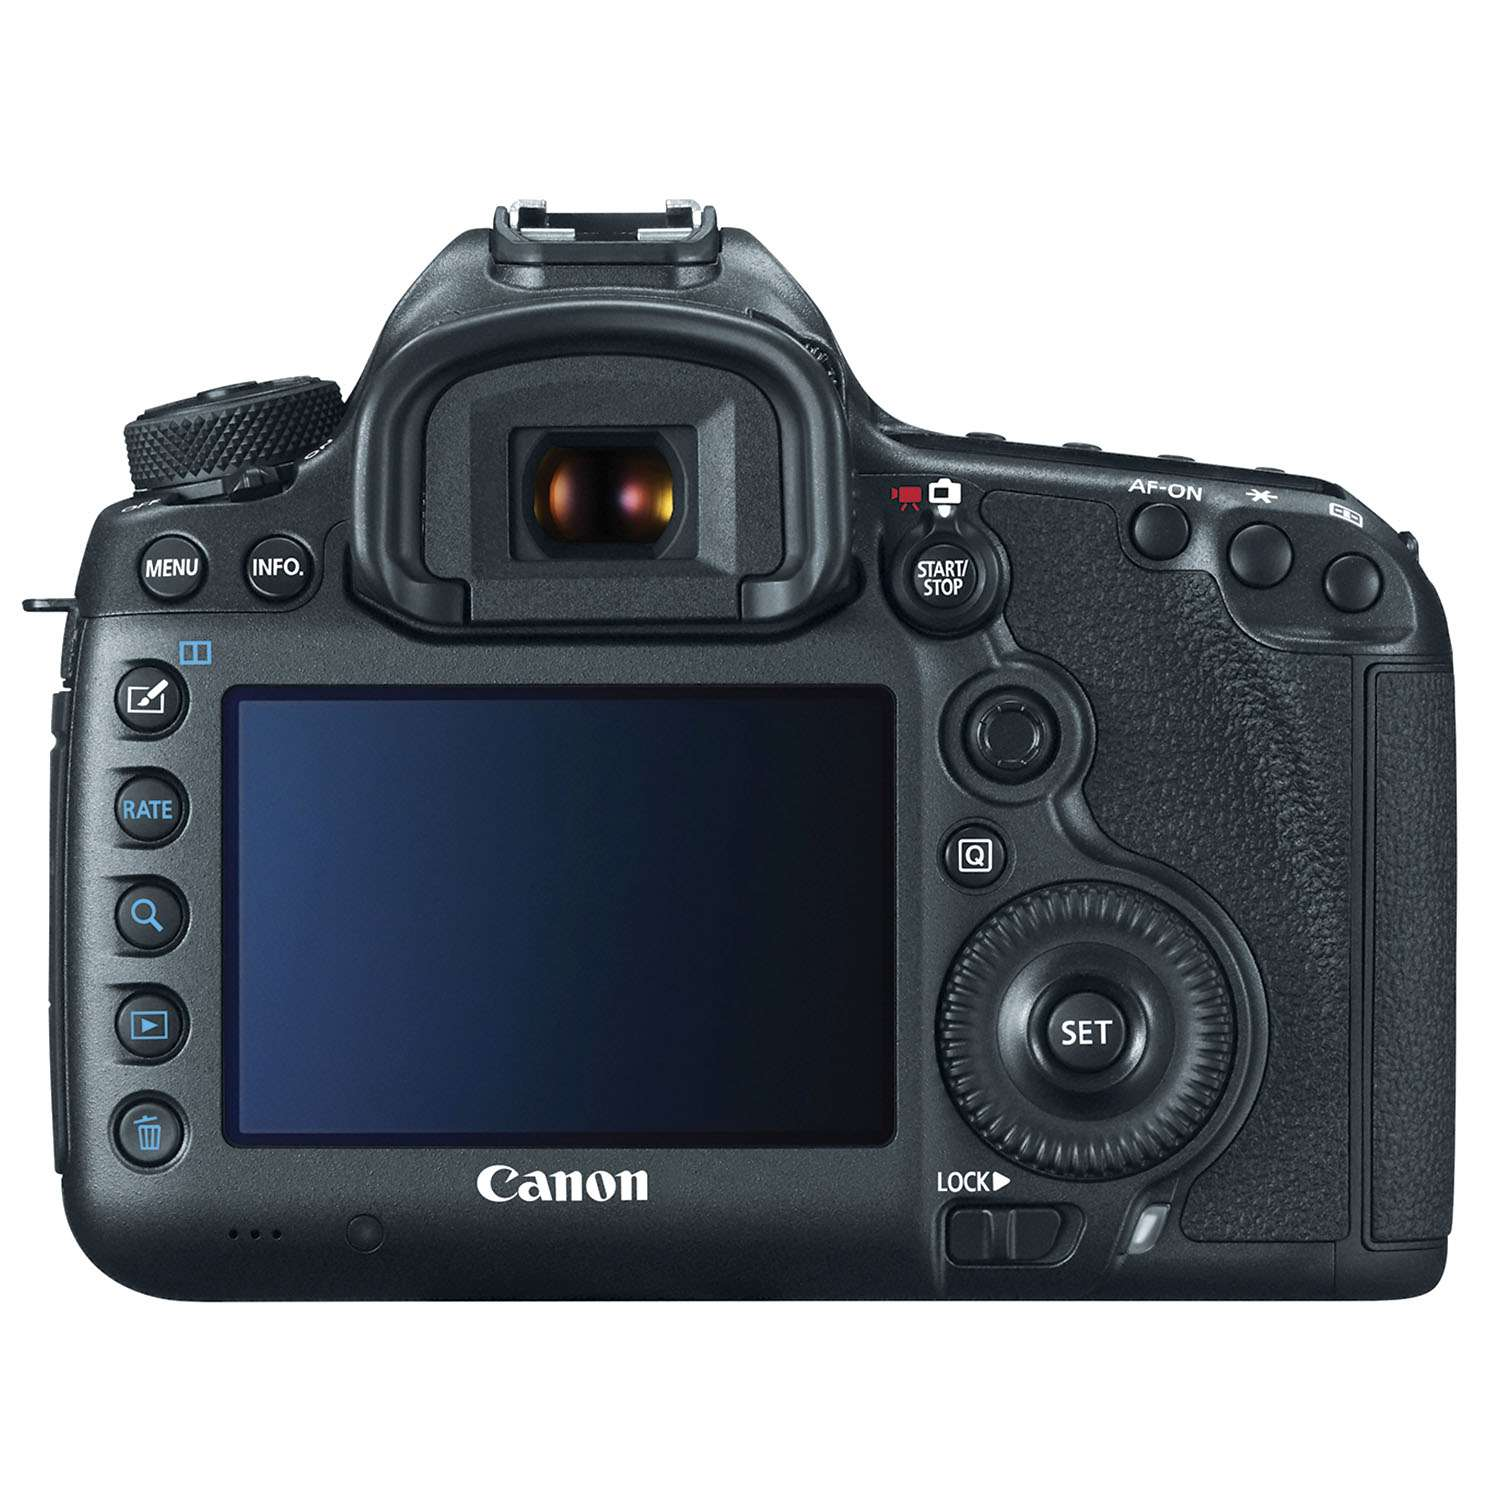 Best ISO values for Canon cameras DSLR Astrophotography Canon camera for astrophotography